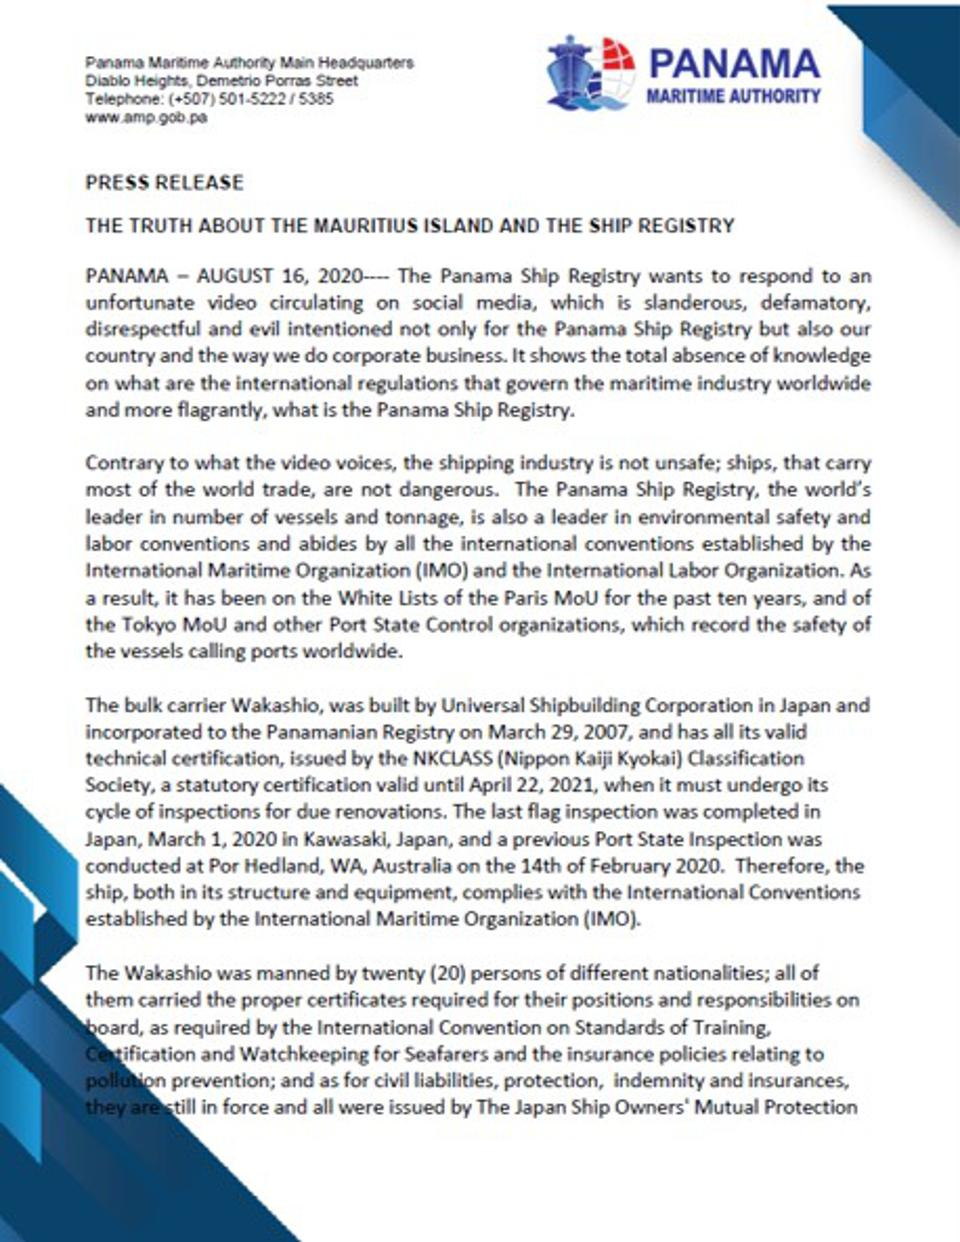 16 August 2020: Panama Maritime Authority Press Release entitled 'The truth about the Mauritius Island and the Ship Registry'